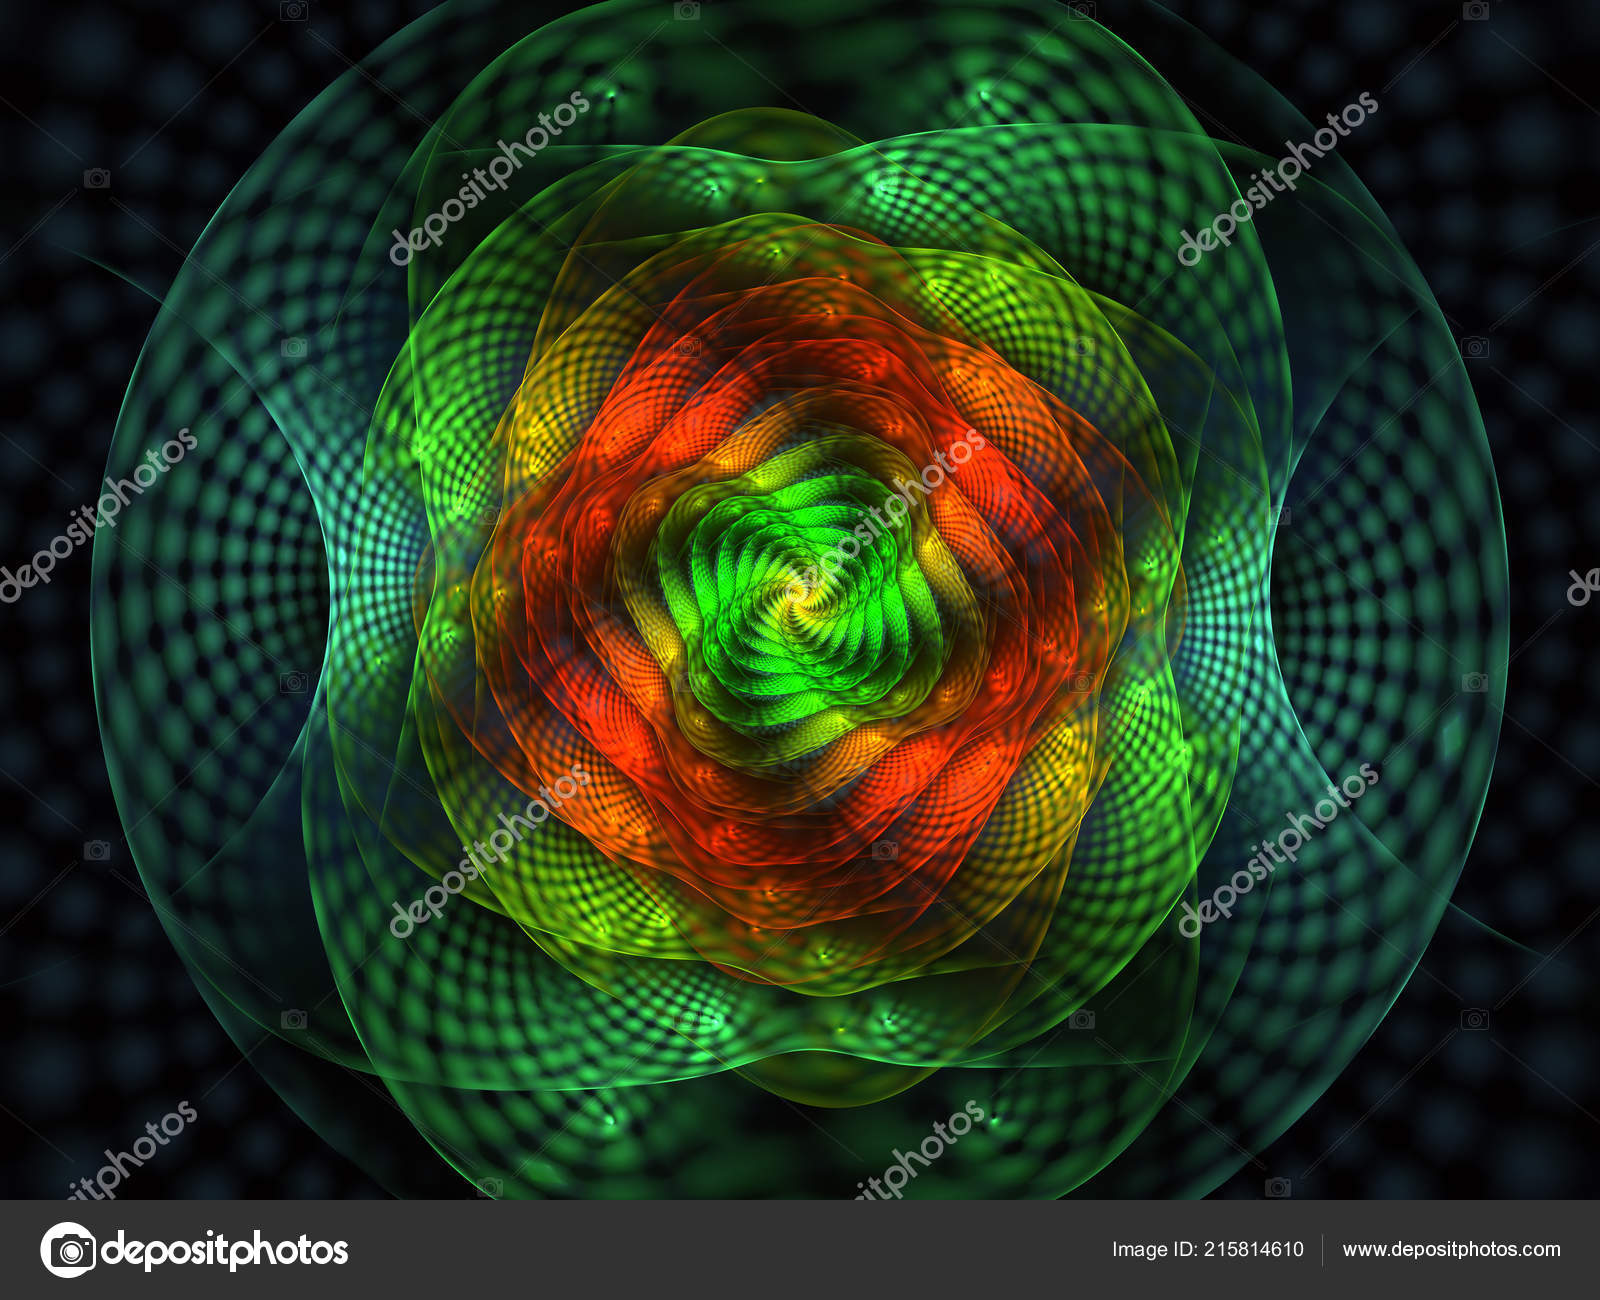 Abstract Fractal Grids Spirals Spiral Flower Usable Desktop